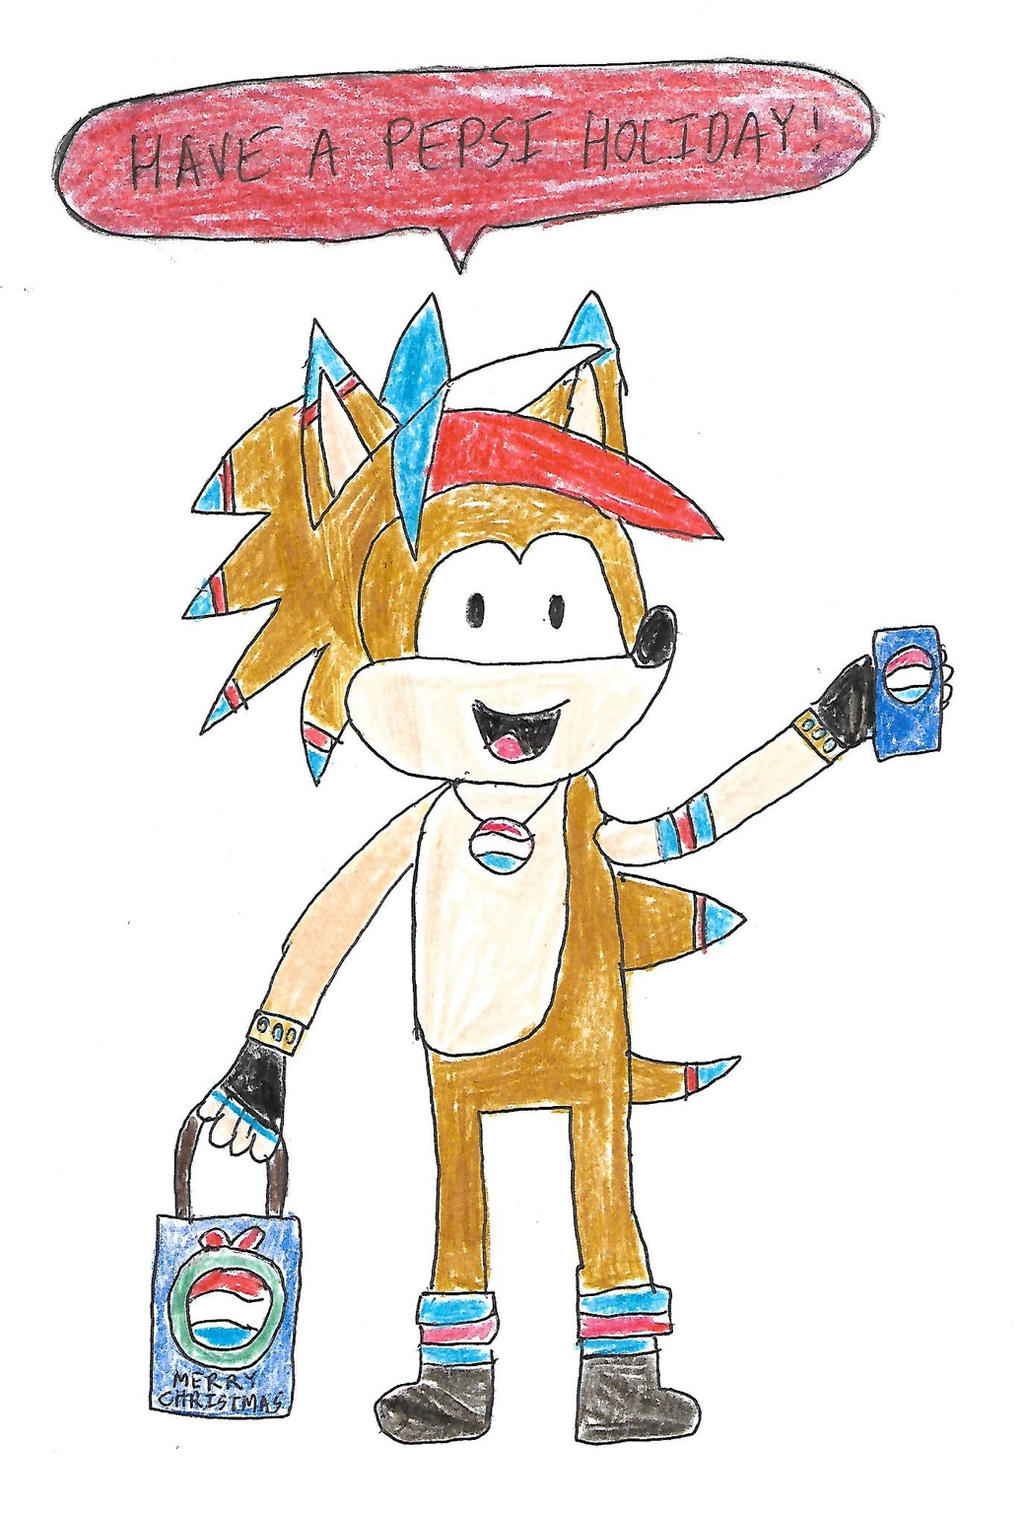 Sonic 25 Days of X-Mas - Day 19 (Pepsi Hedgehog) by dth1971